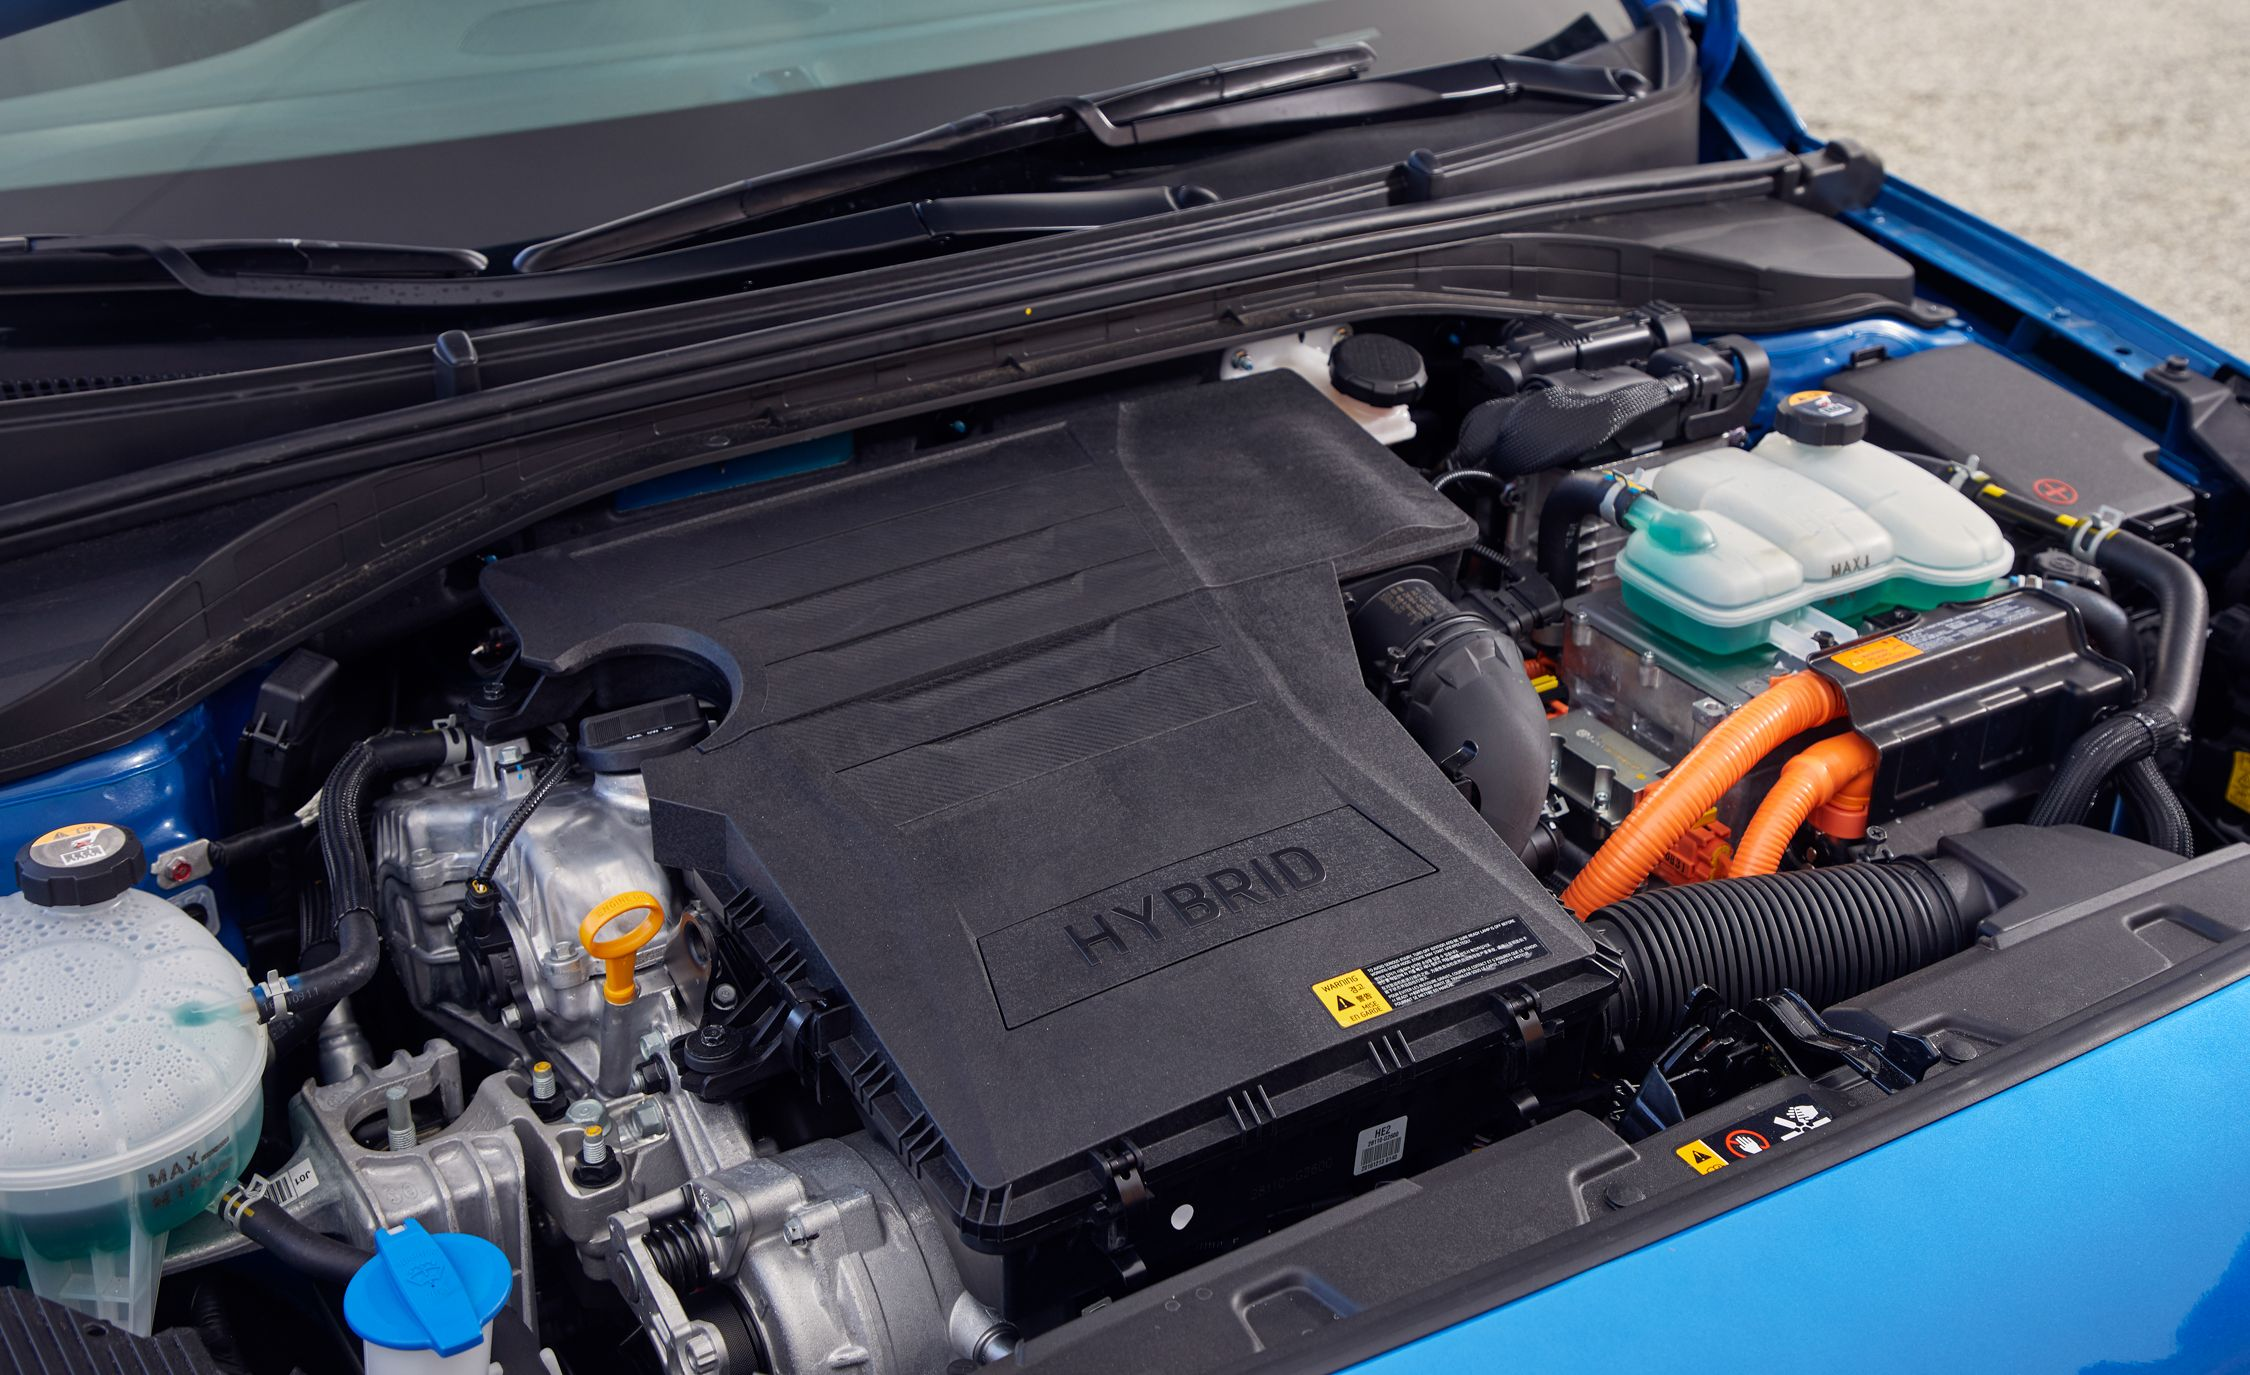 How The Hyundai Ioniq Ditched Its Traditional 12v Lead Acid Starter Battery